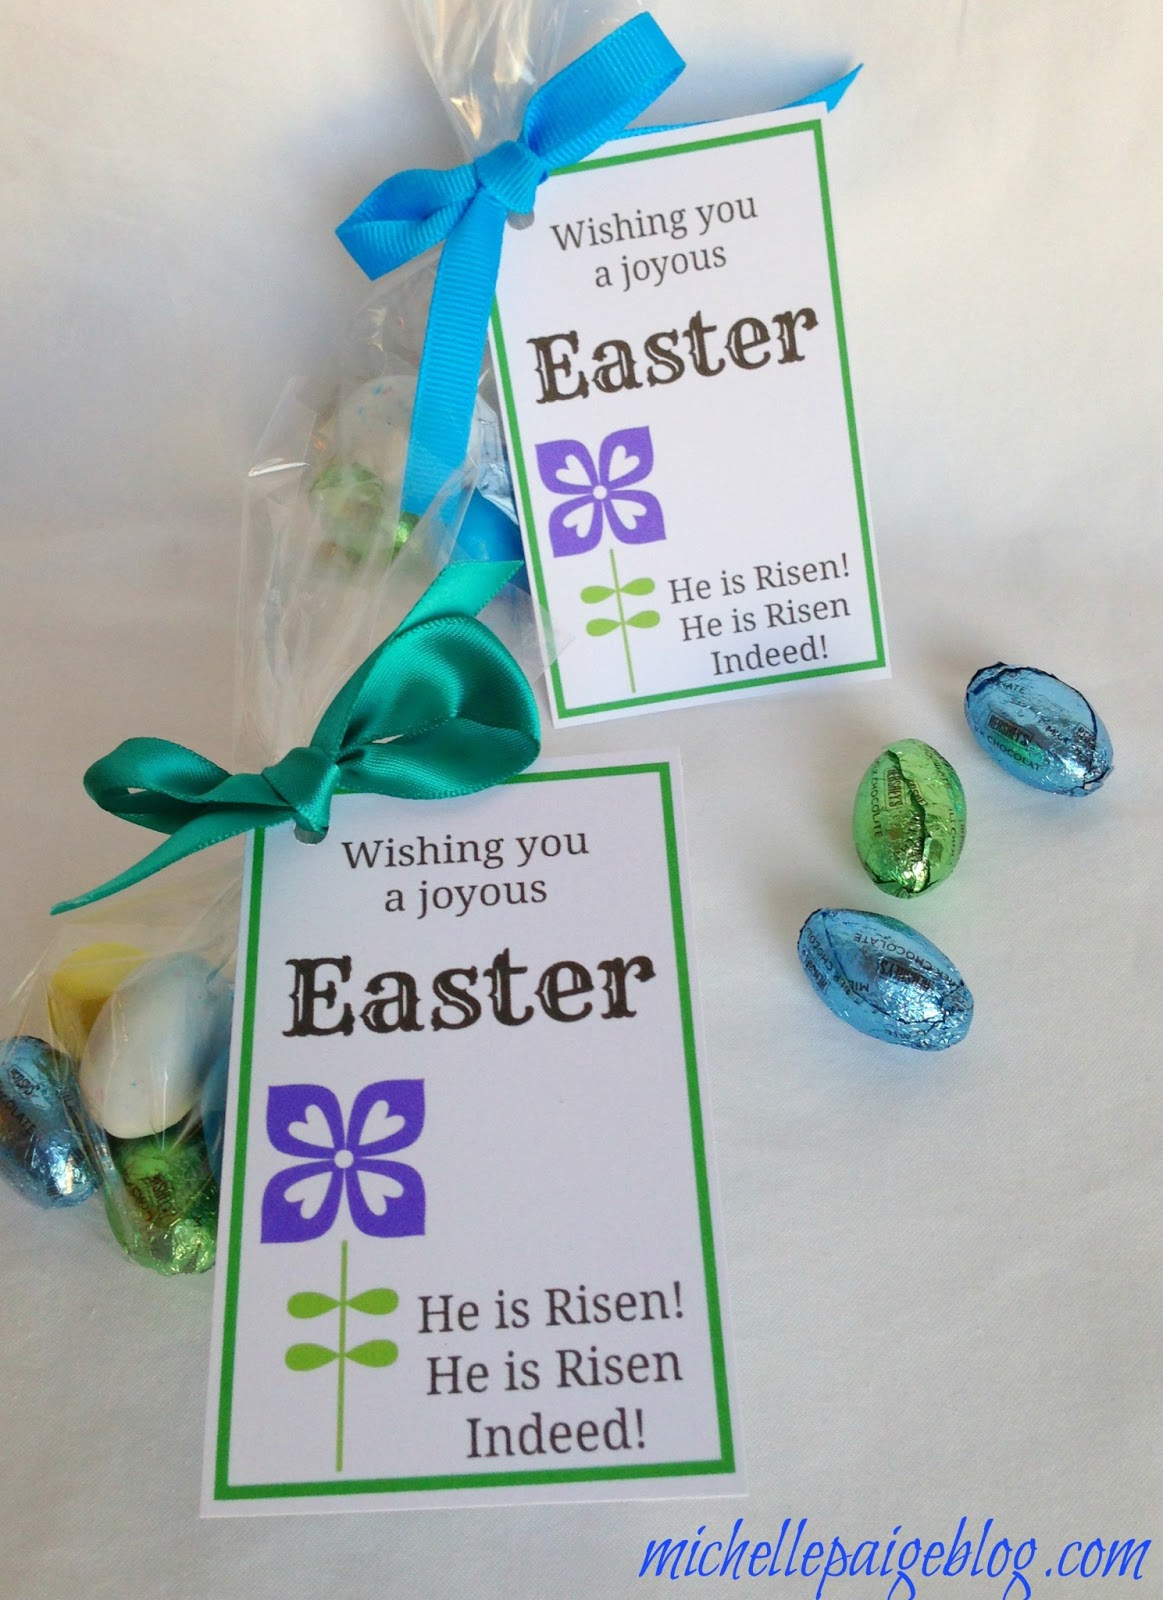 Michelle paige blogs easter favors for teachers friends and family easter favors for teachers friends and family negle Images